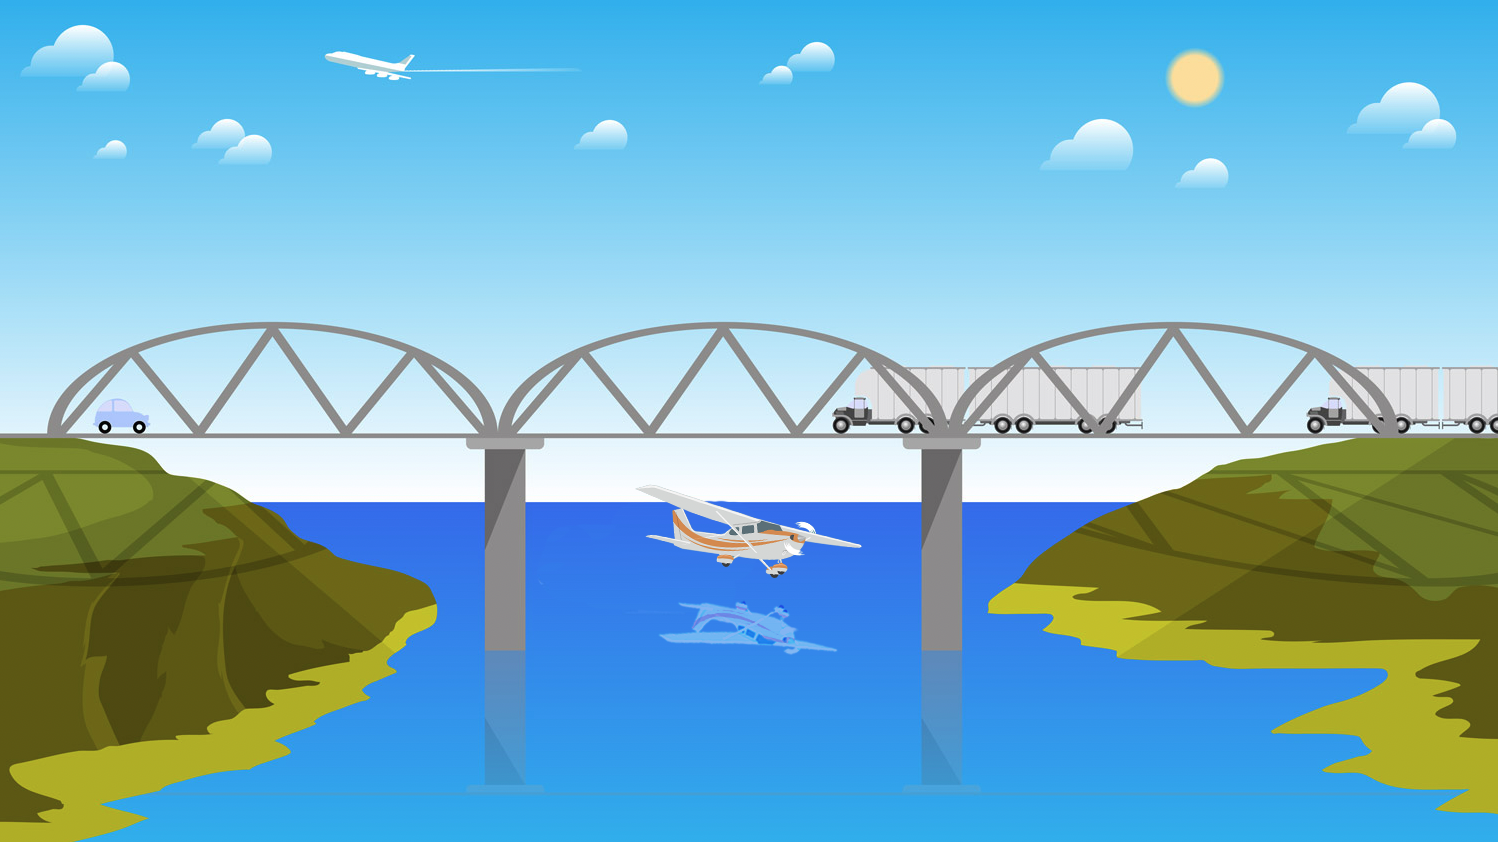 Flying under bridges